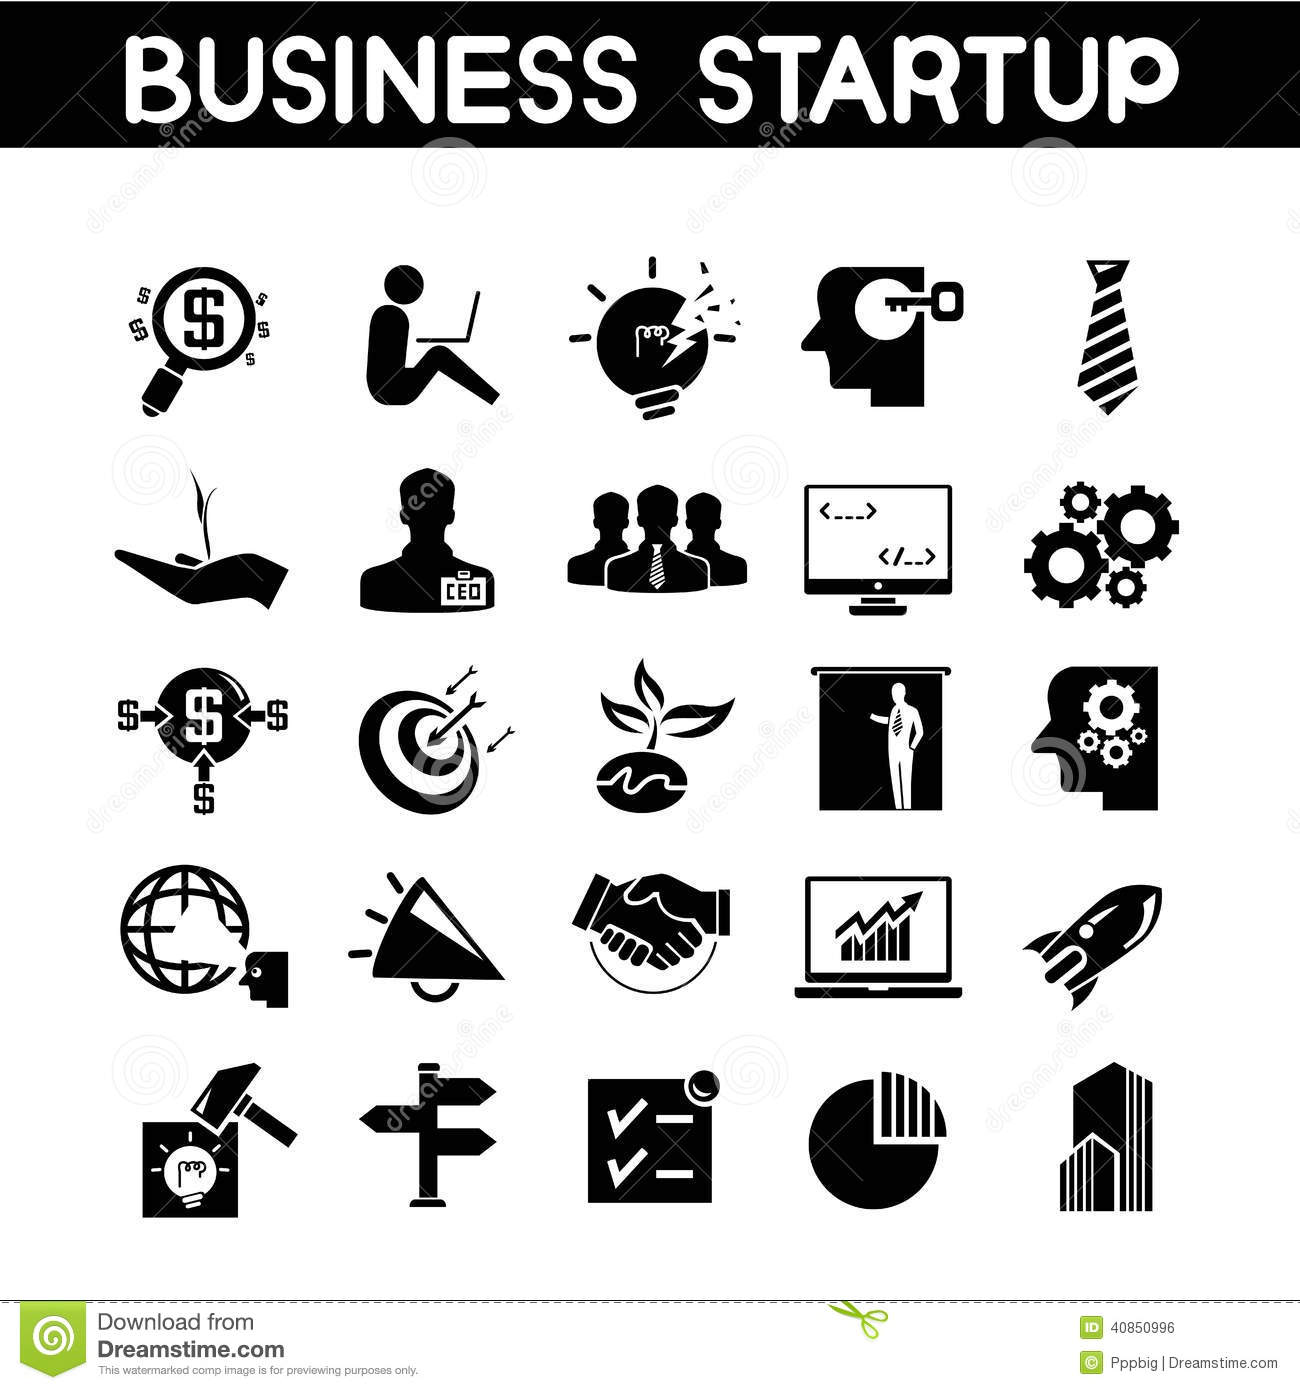 https://thumbs.dreamstime.com/z/business-startup-icons-set-growth-40850996.jpg